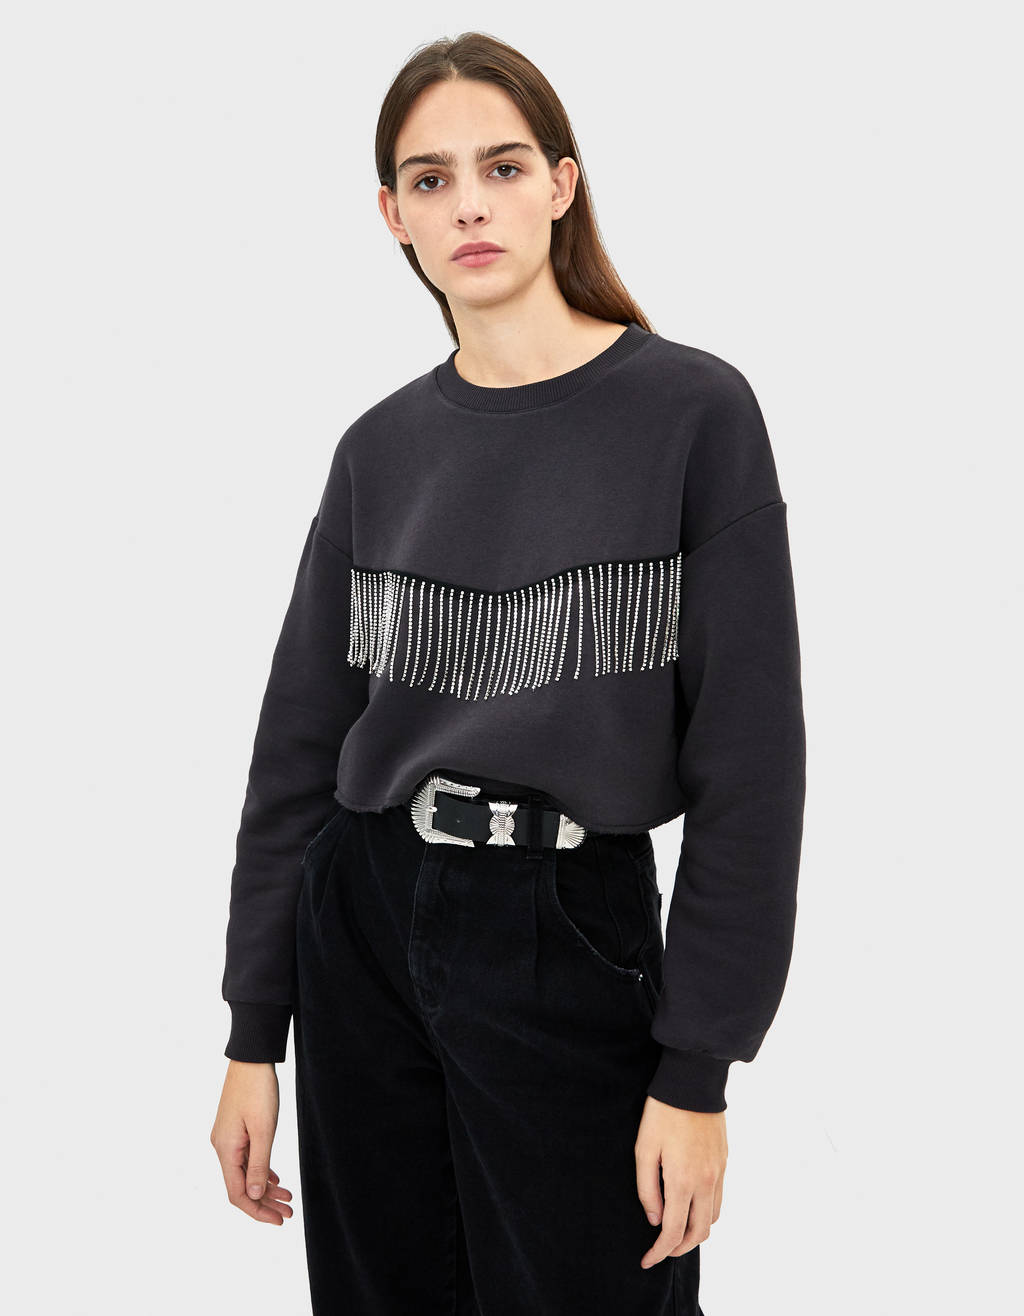 Cropped sweatshirt with bejewelled fringe